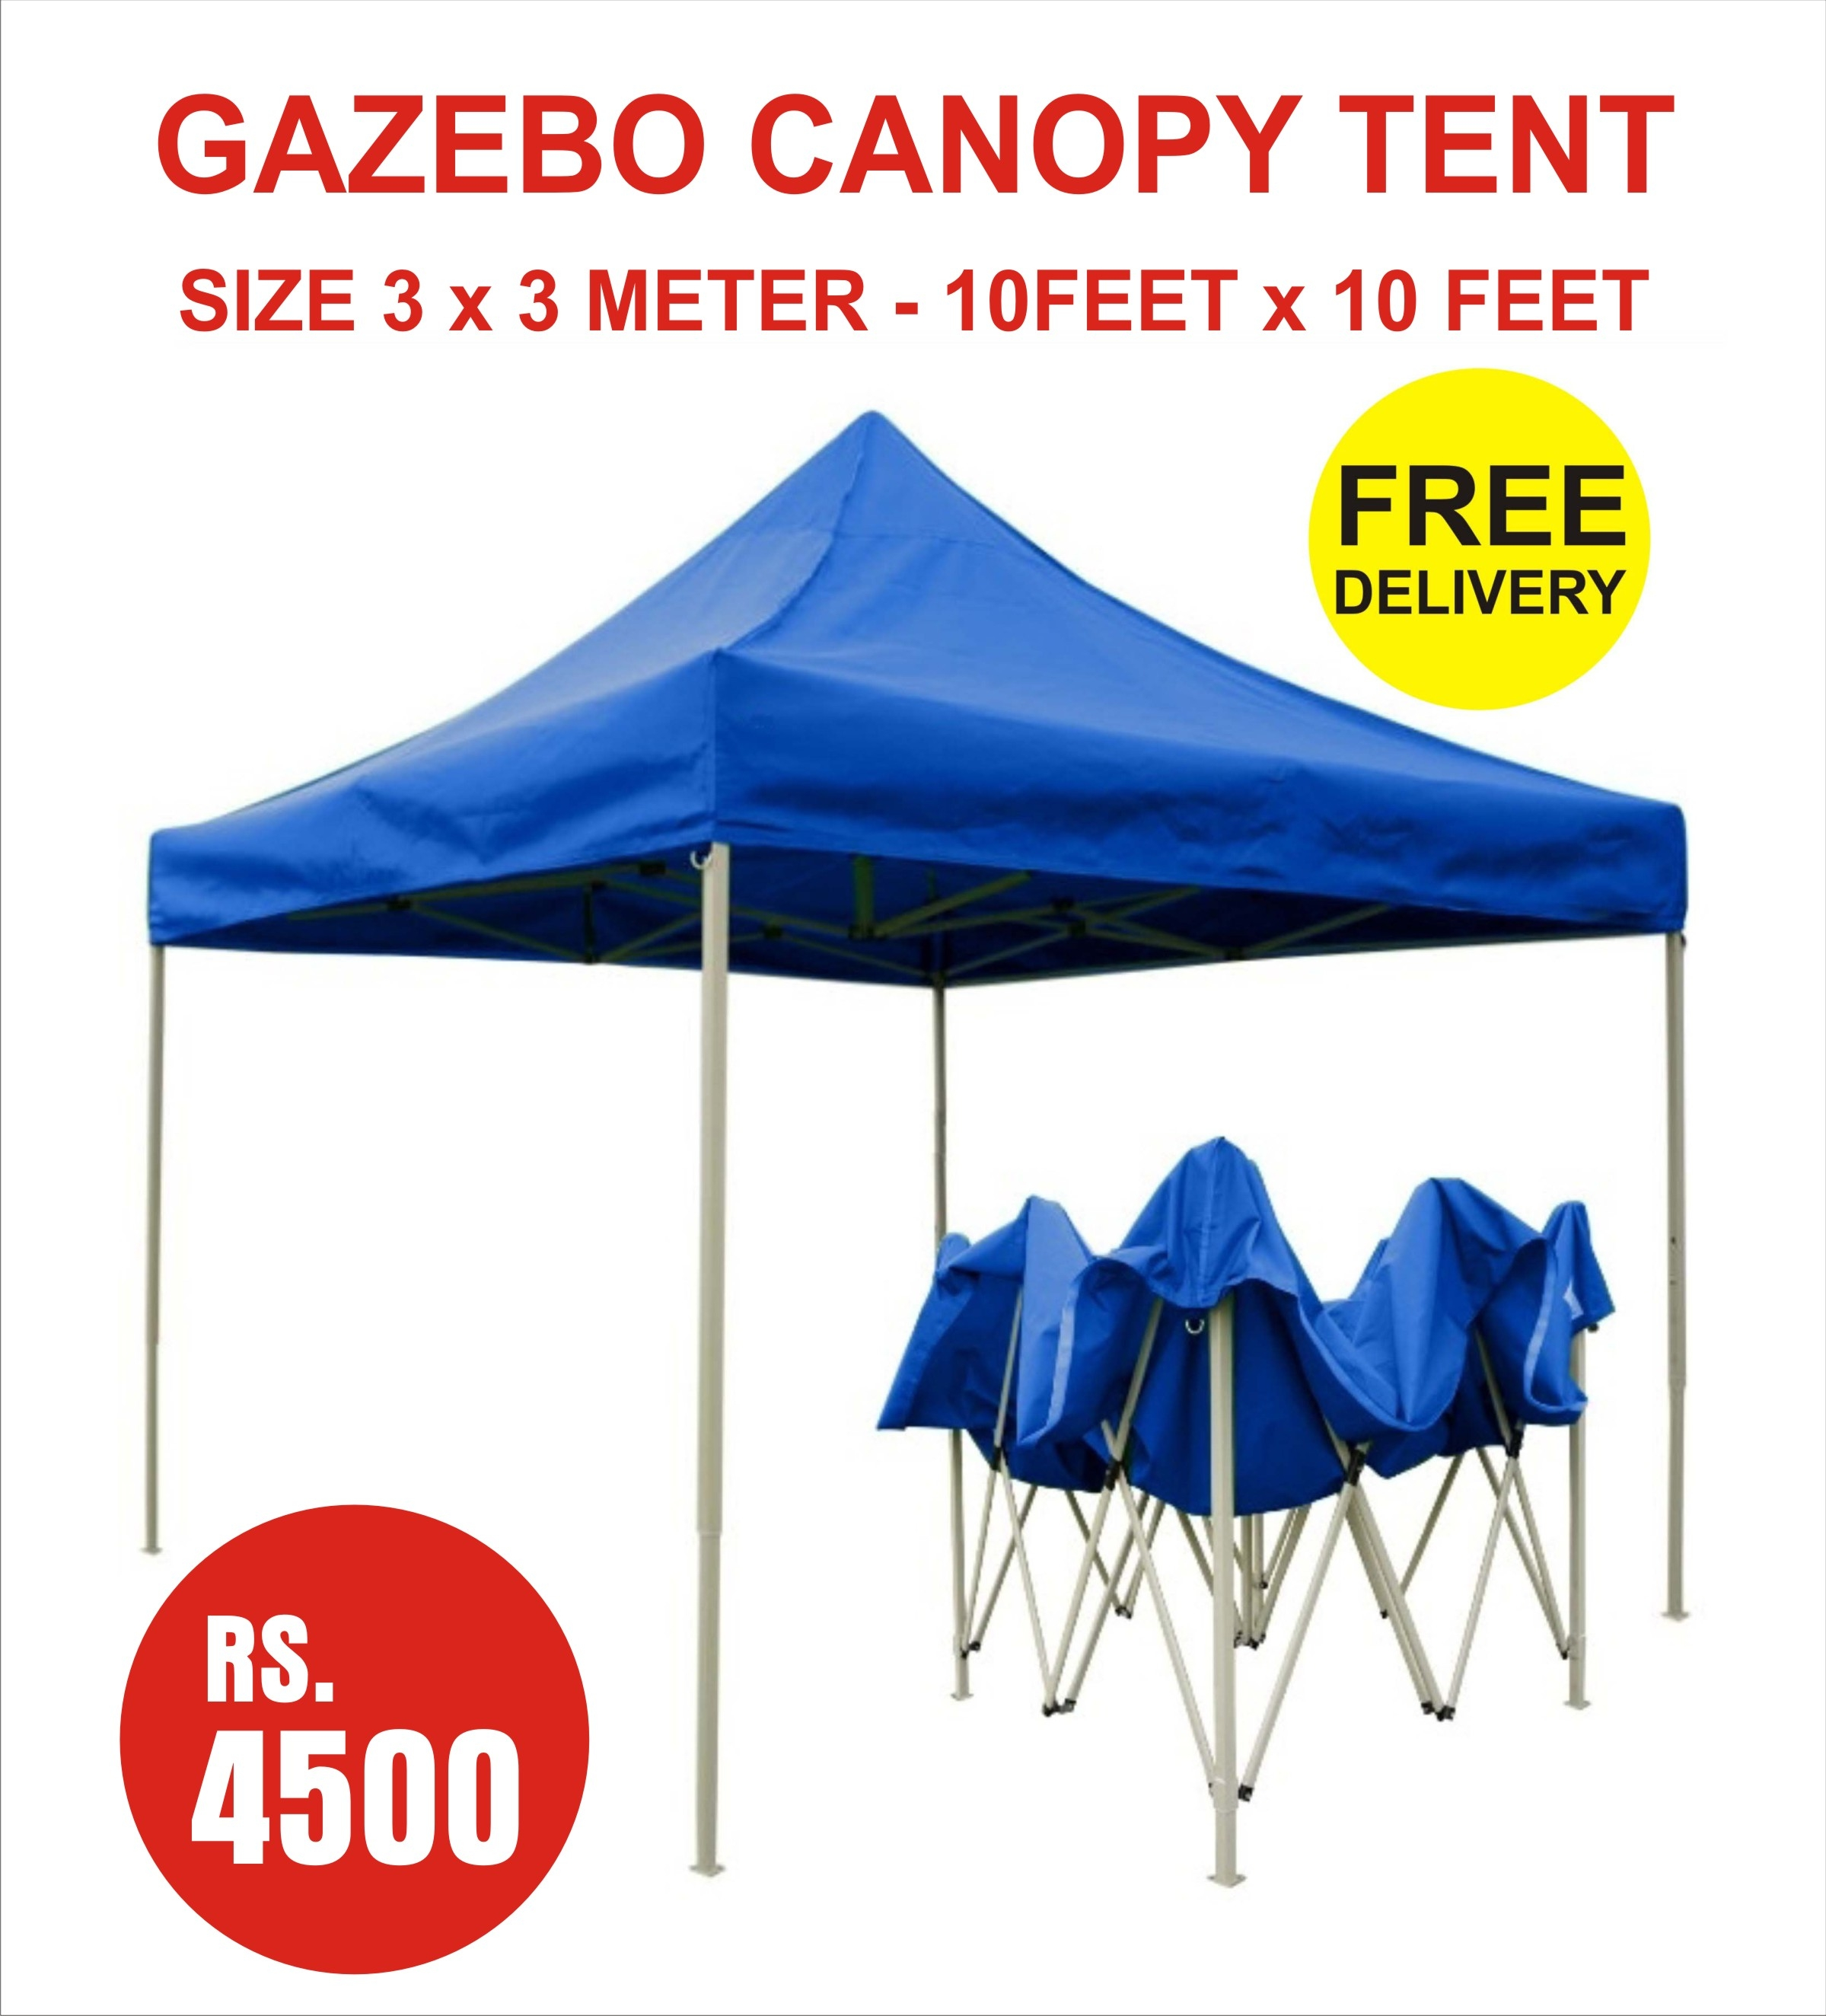 gazebo canopy tent blue color foldable outdoor party